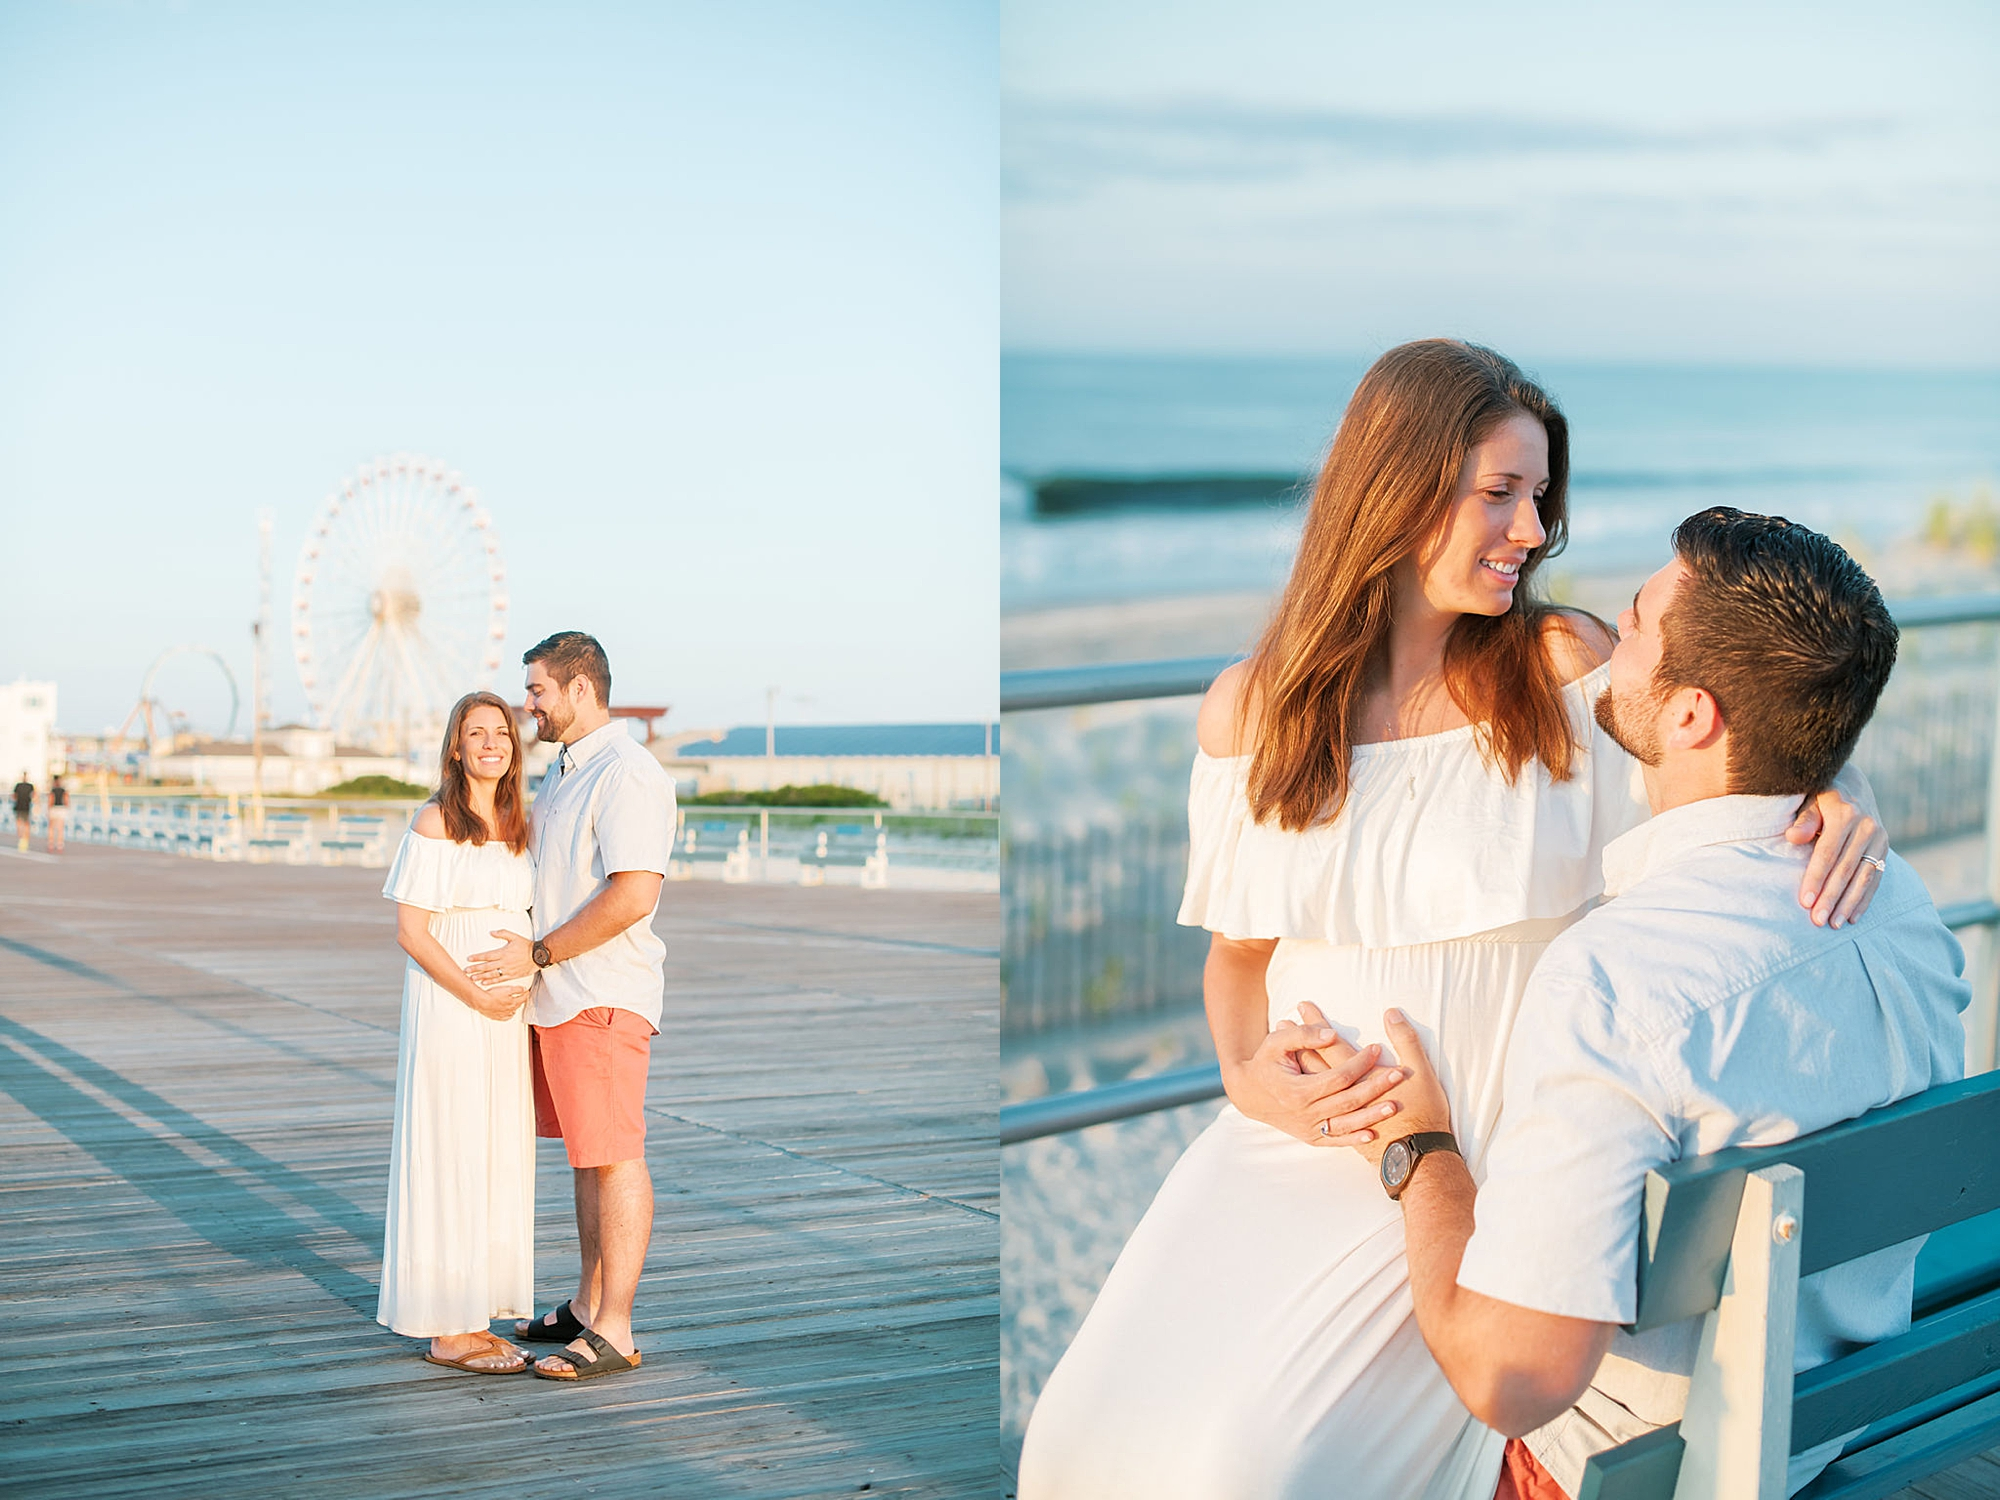 Glowy and Romantic Maternity Photography in Ocean City NJ by Magdalena Studios 0013